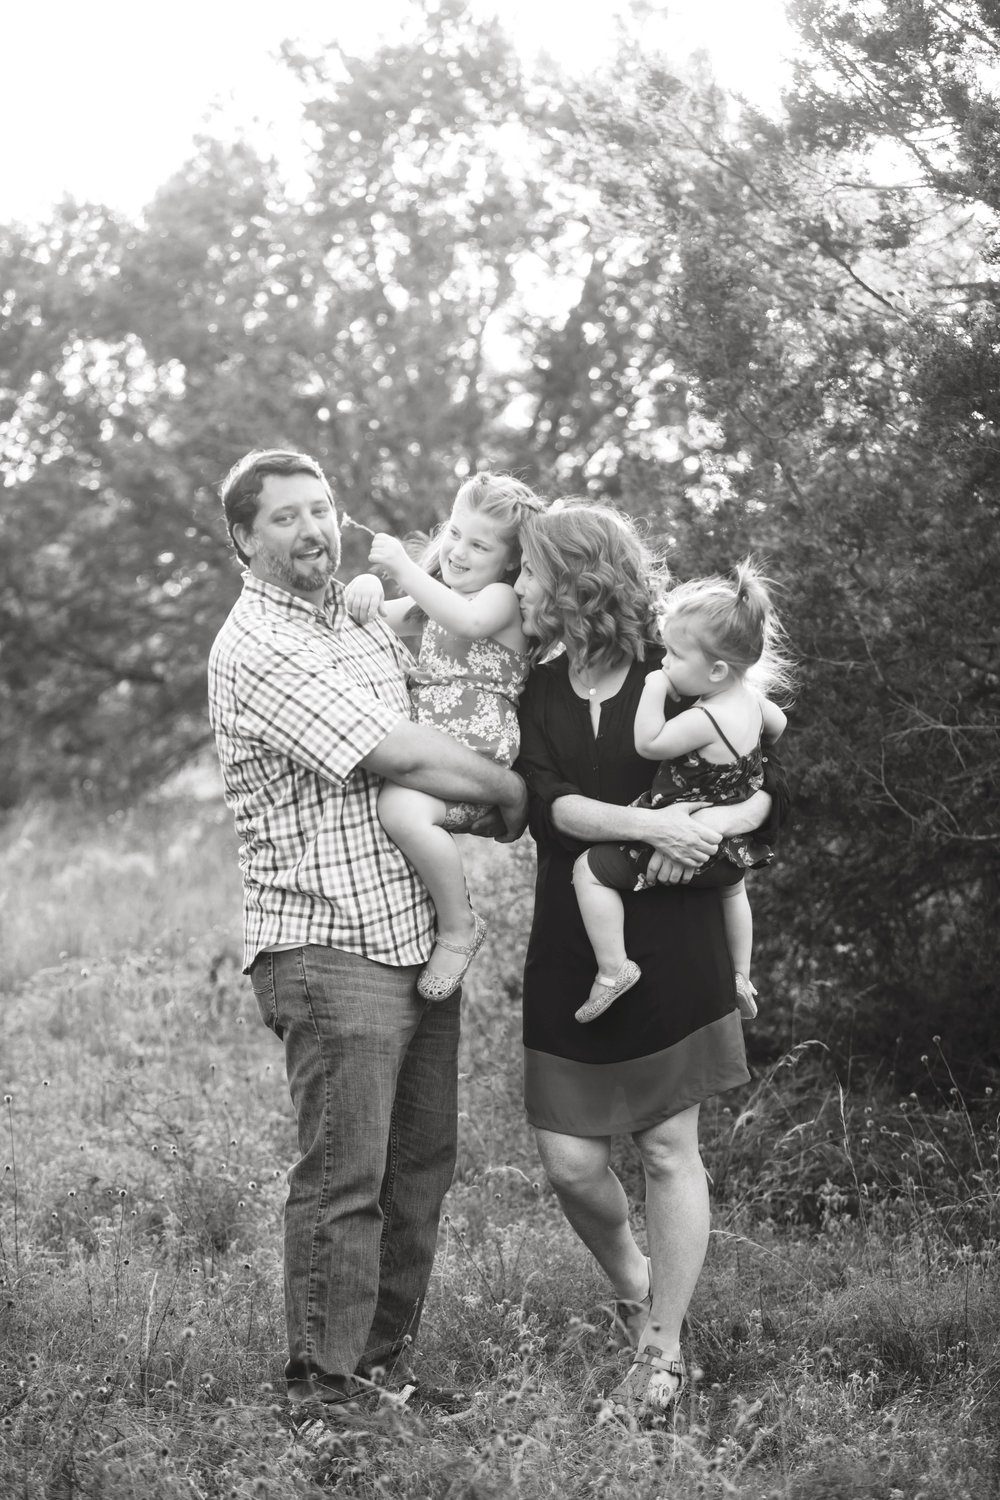 Marble_Falls_Family_Photographer_Jenna_Petty_13.jpg